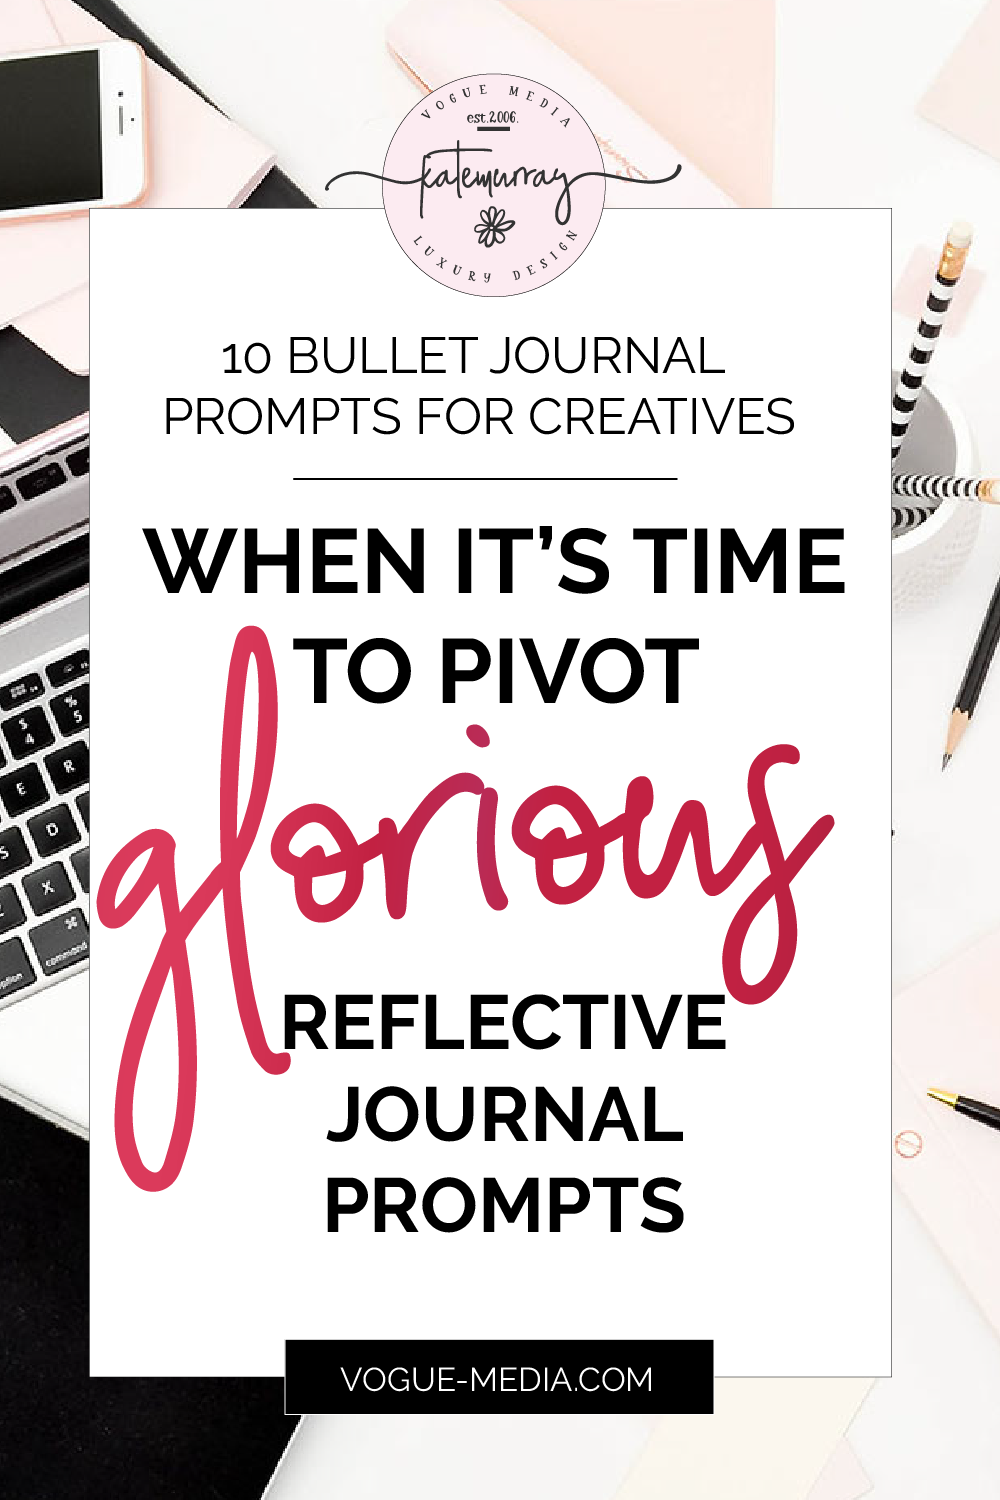 Reflective Journal Prompts